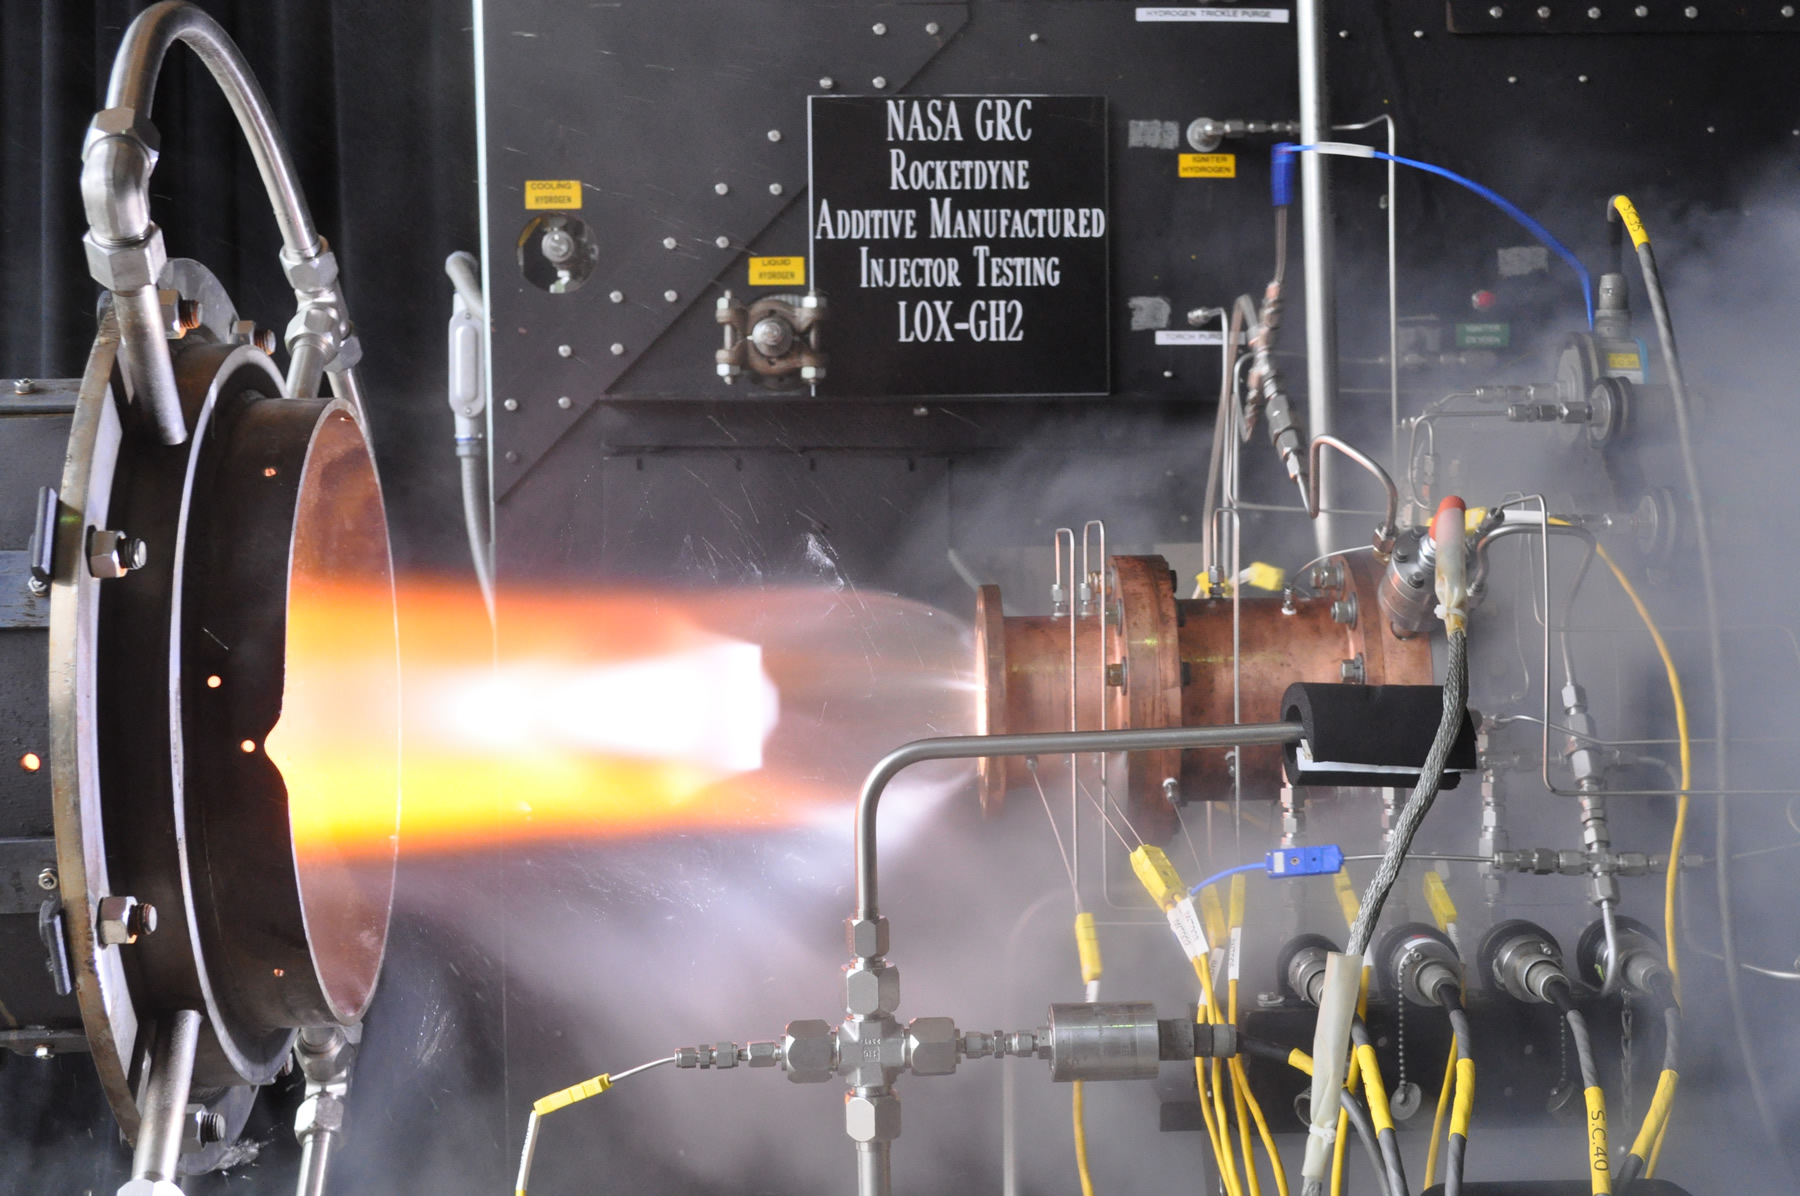 Nasa industry test 3d printed rocket engine injector for Nasa additive manufacturing